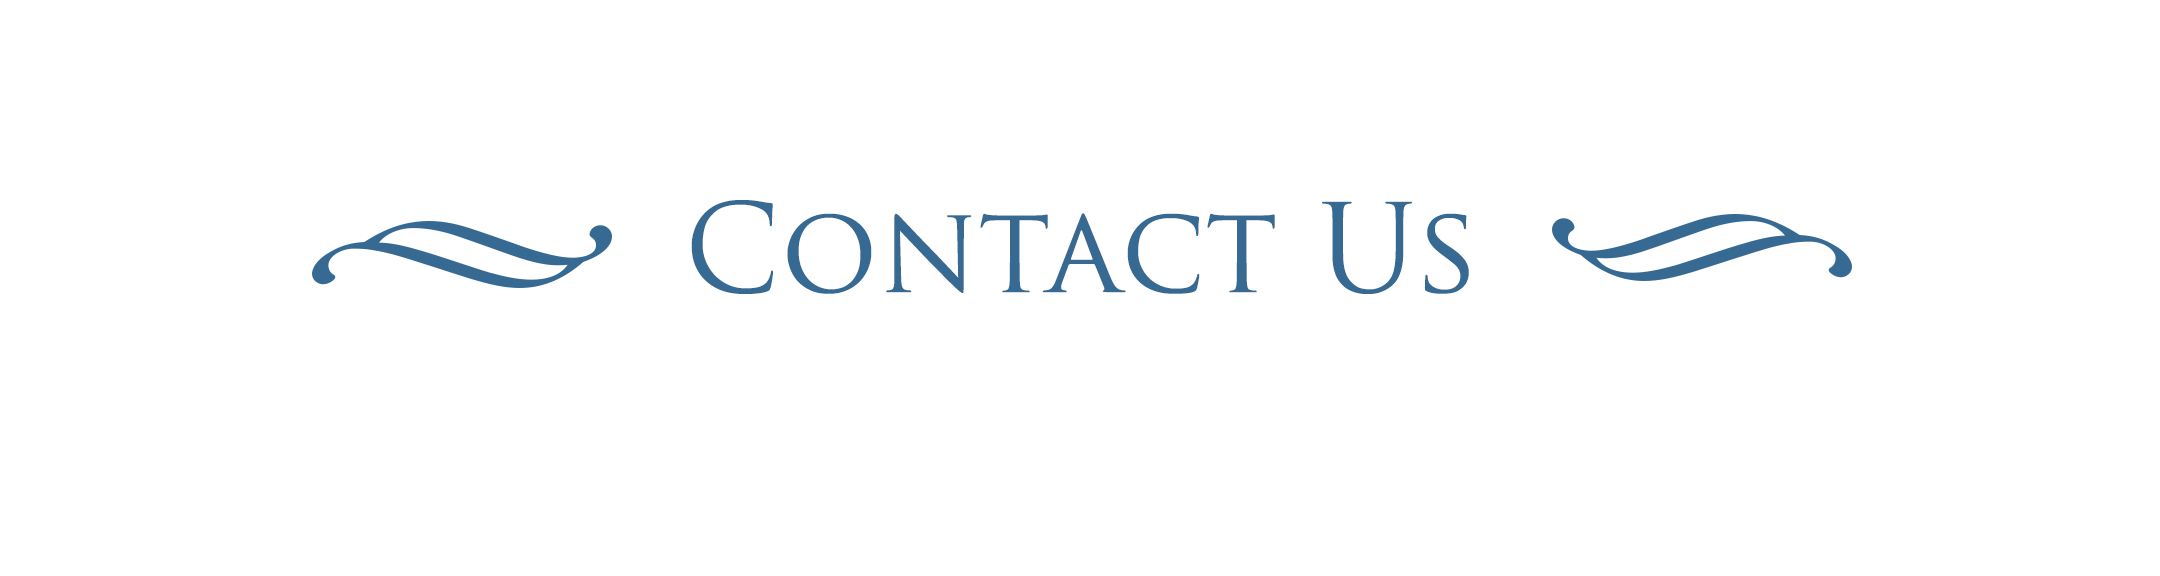 Contact Us Header_blue.png